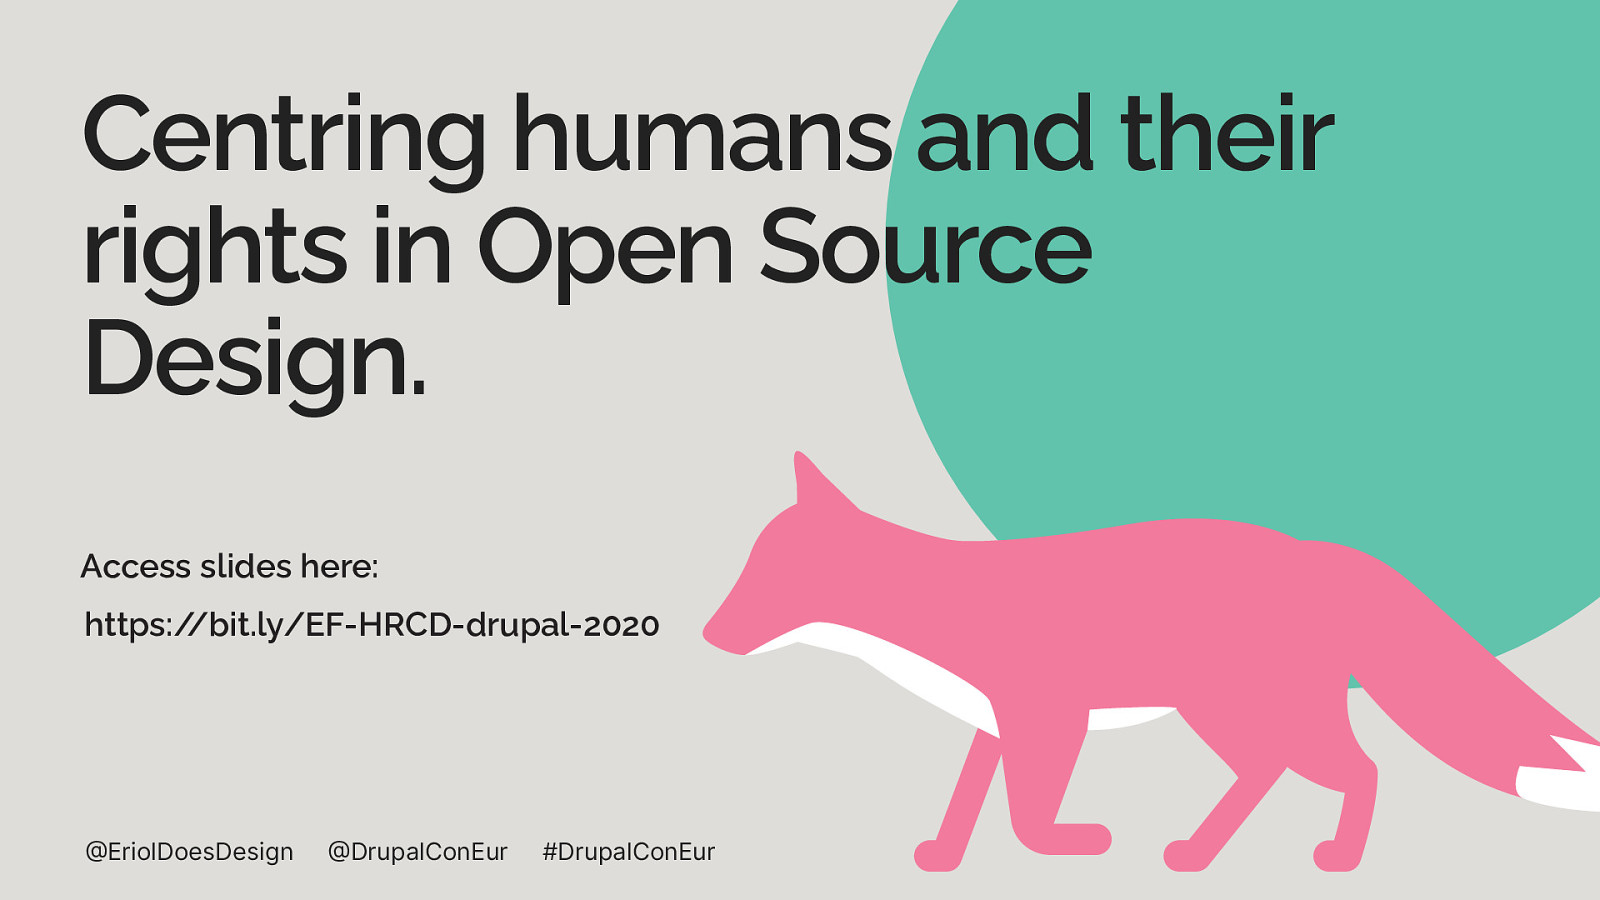 Centring humans and their rights in Open Source Design.